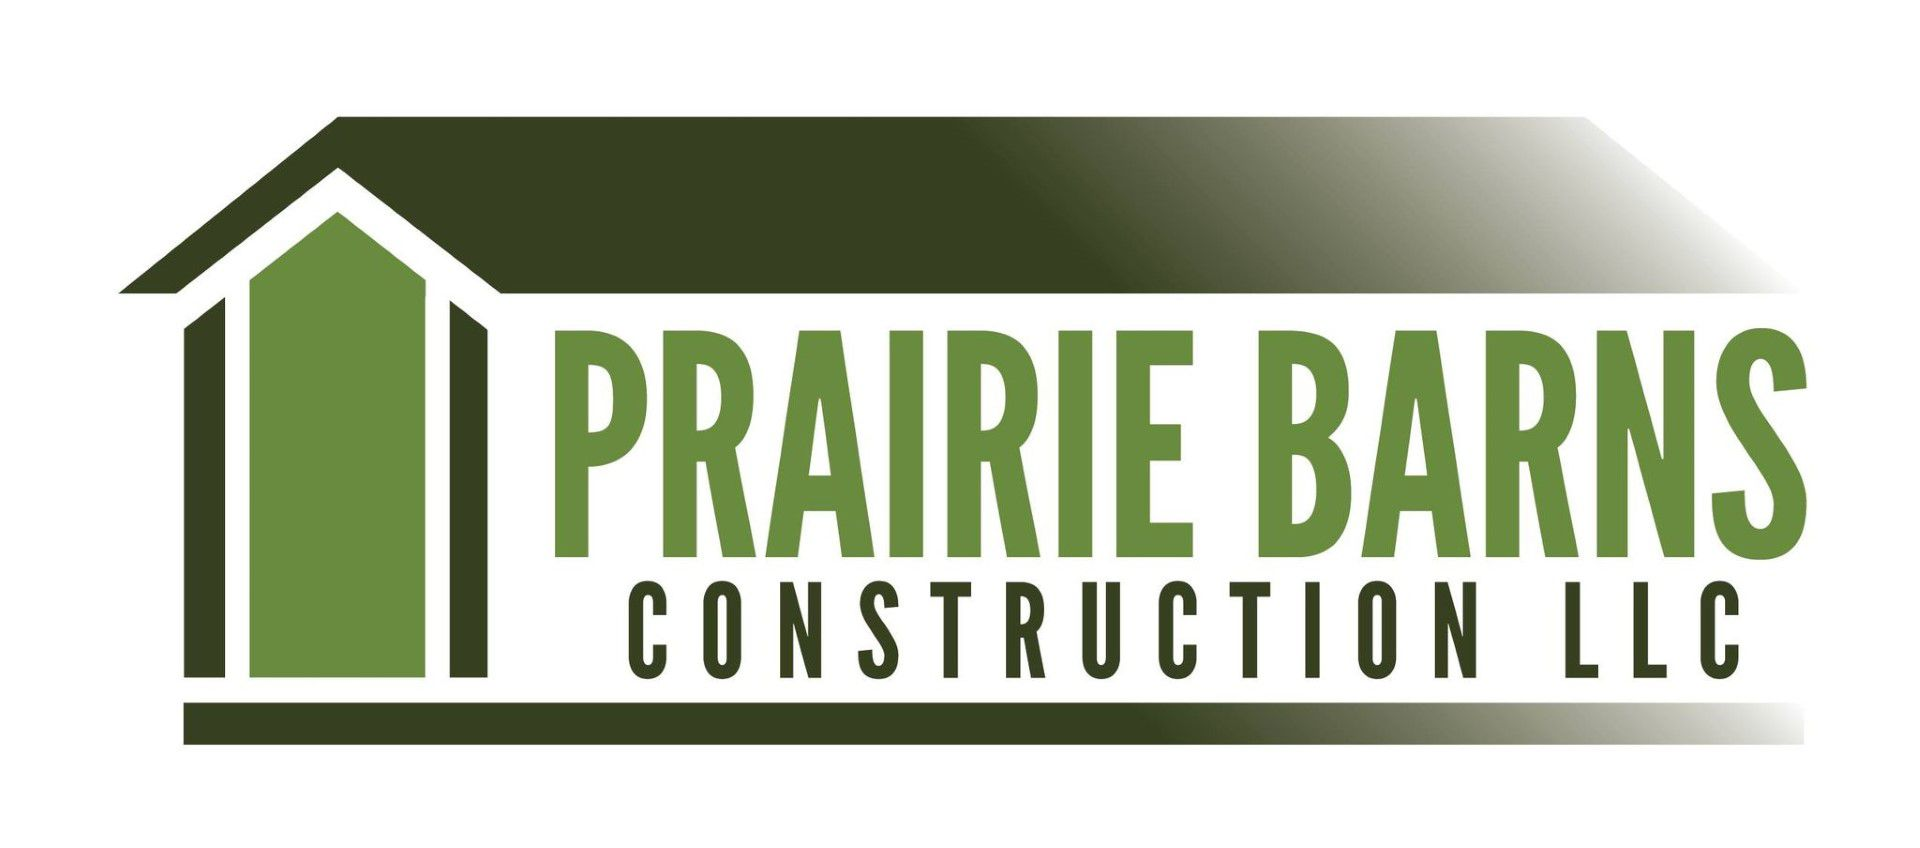 Prairie Barns Construction llc Logo